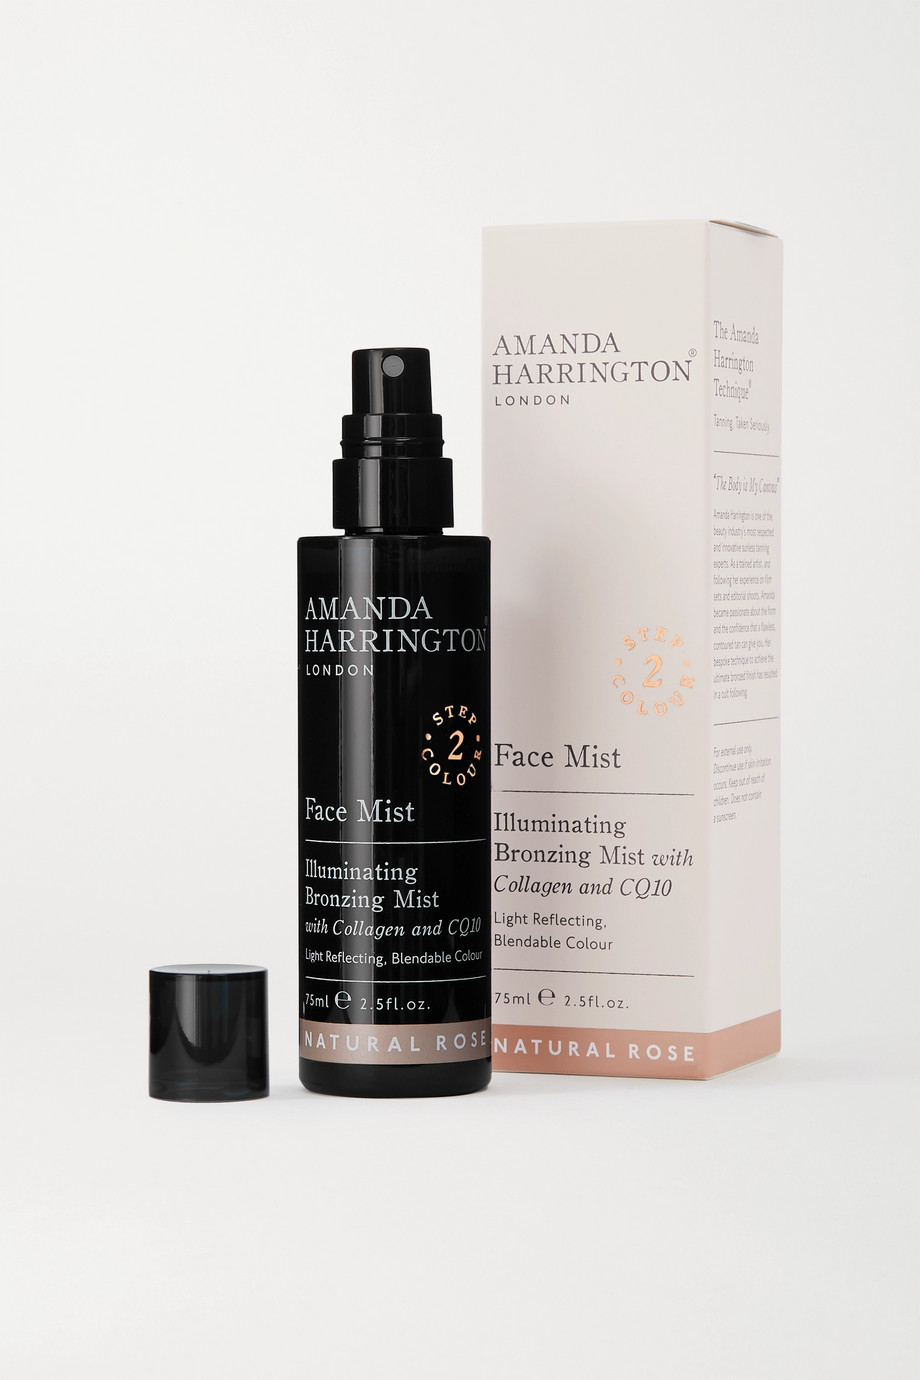 Amanda Harrington Face Mist - Natural Rose, 75ml